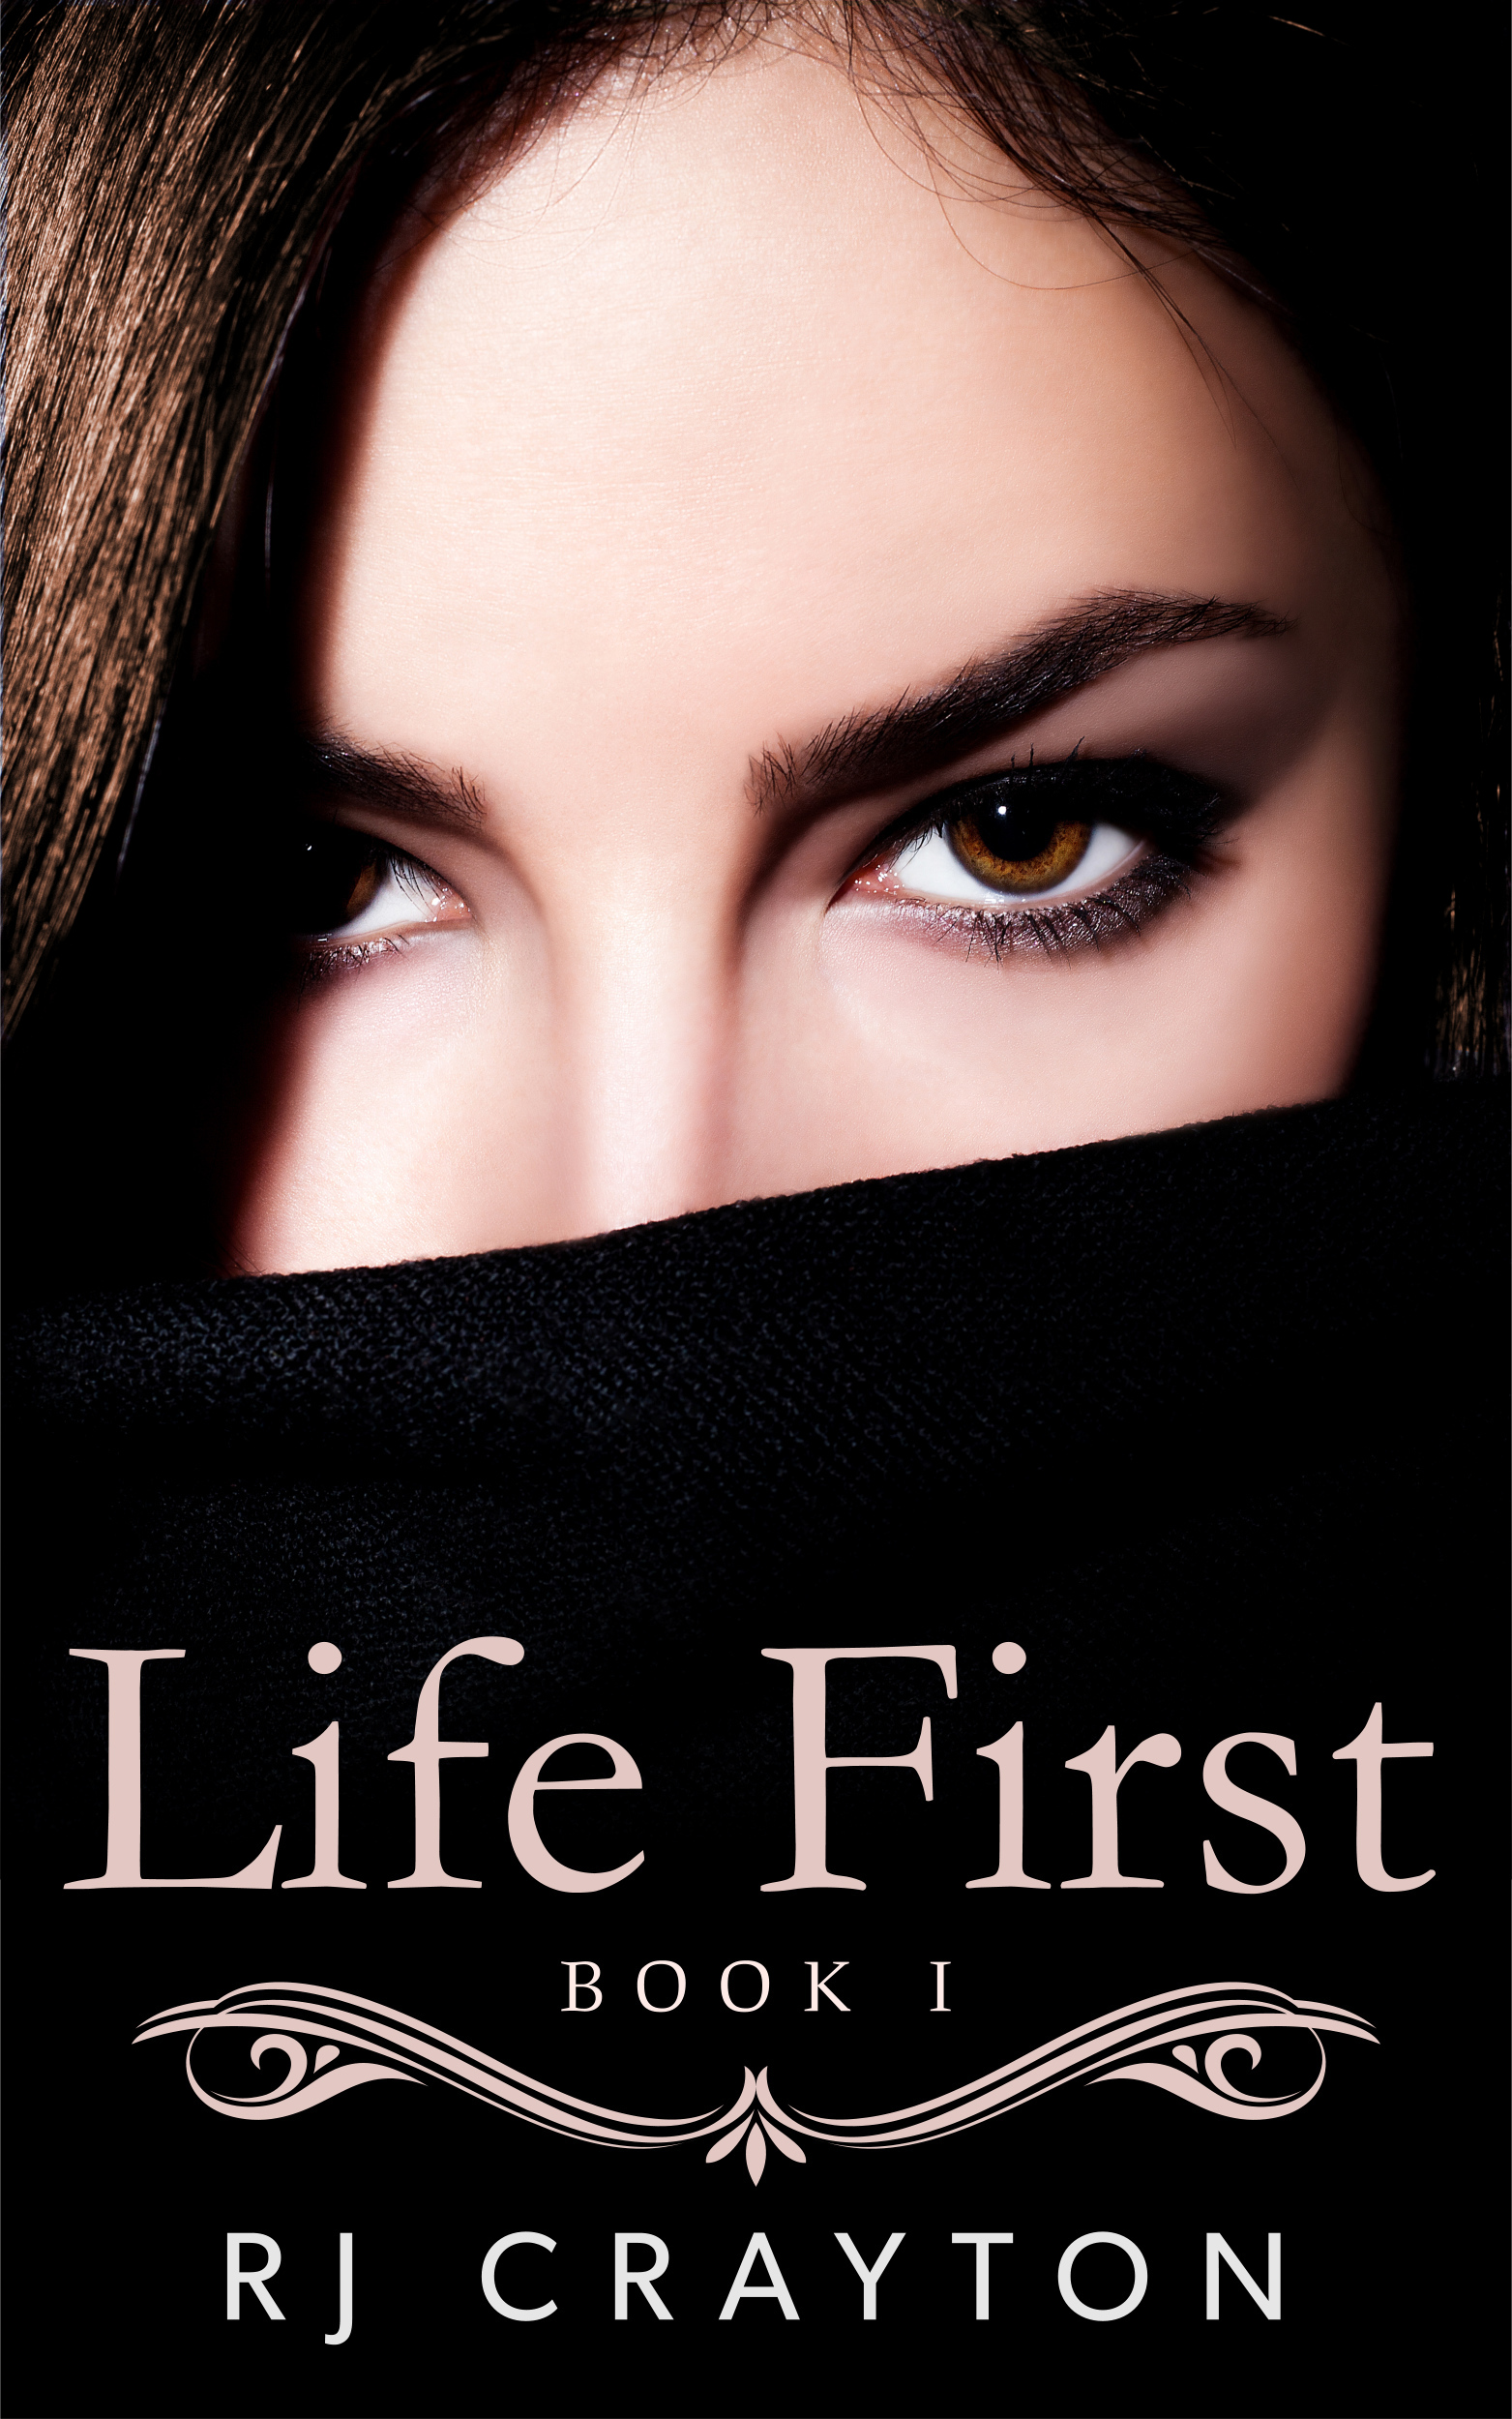 Life_first_brown2